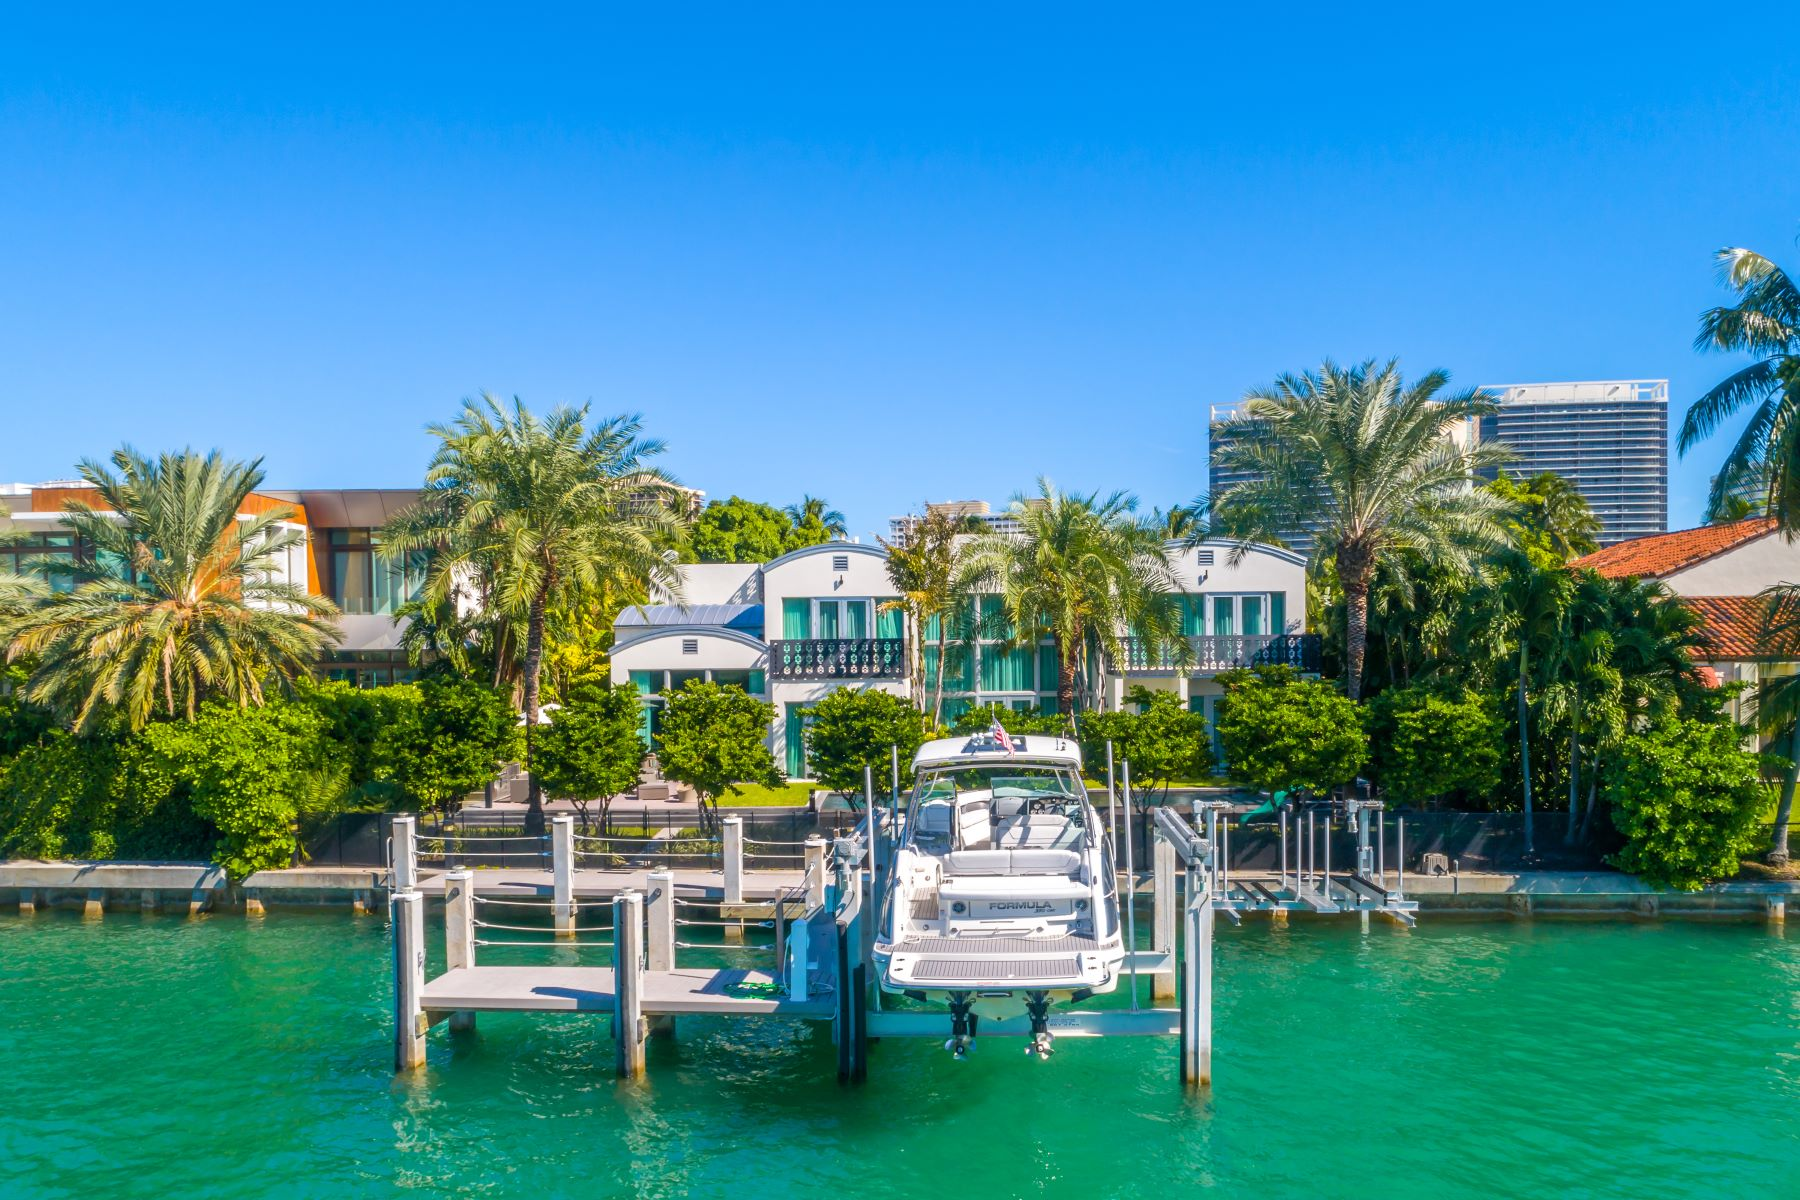 Single Family Homes for Sale at 56 Bal Bay Dr Bal Harbour, Florida 33154 United States